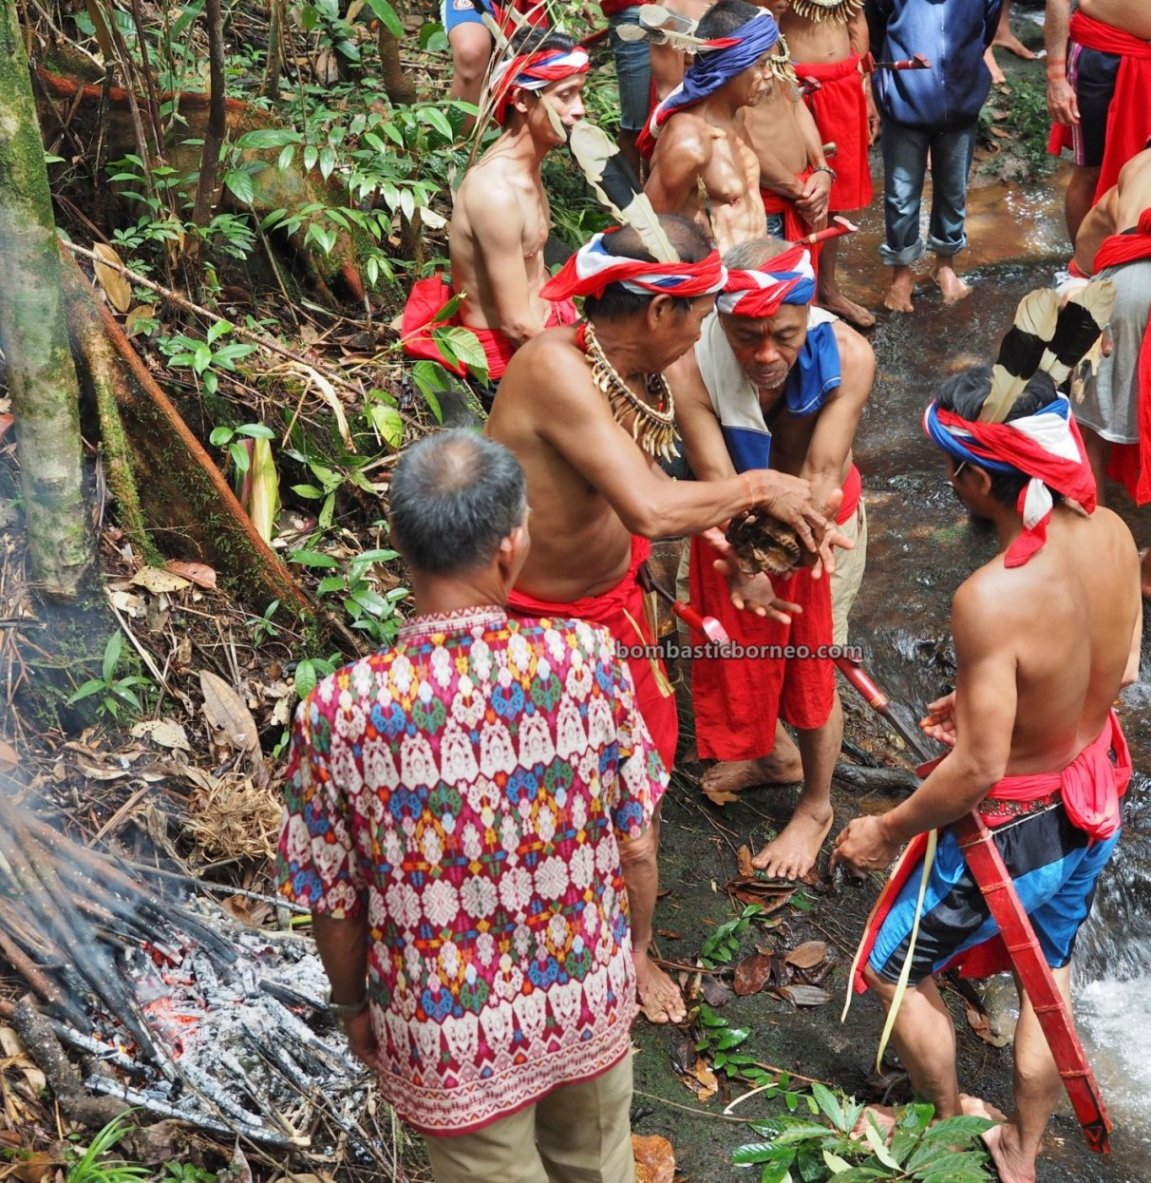 Skull washing, Nyobeng event, Harvest Festival, traditional, budaya, Kalimantan Barat, Desa Sahan, Native, Ethnic, ritual, Tourism, travel guide, Trans Borneo, 穿越婆罗洲游踪, 西加里曼丹达雅部落, 印尼孟加映文化